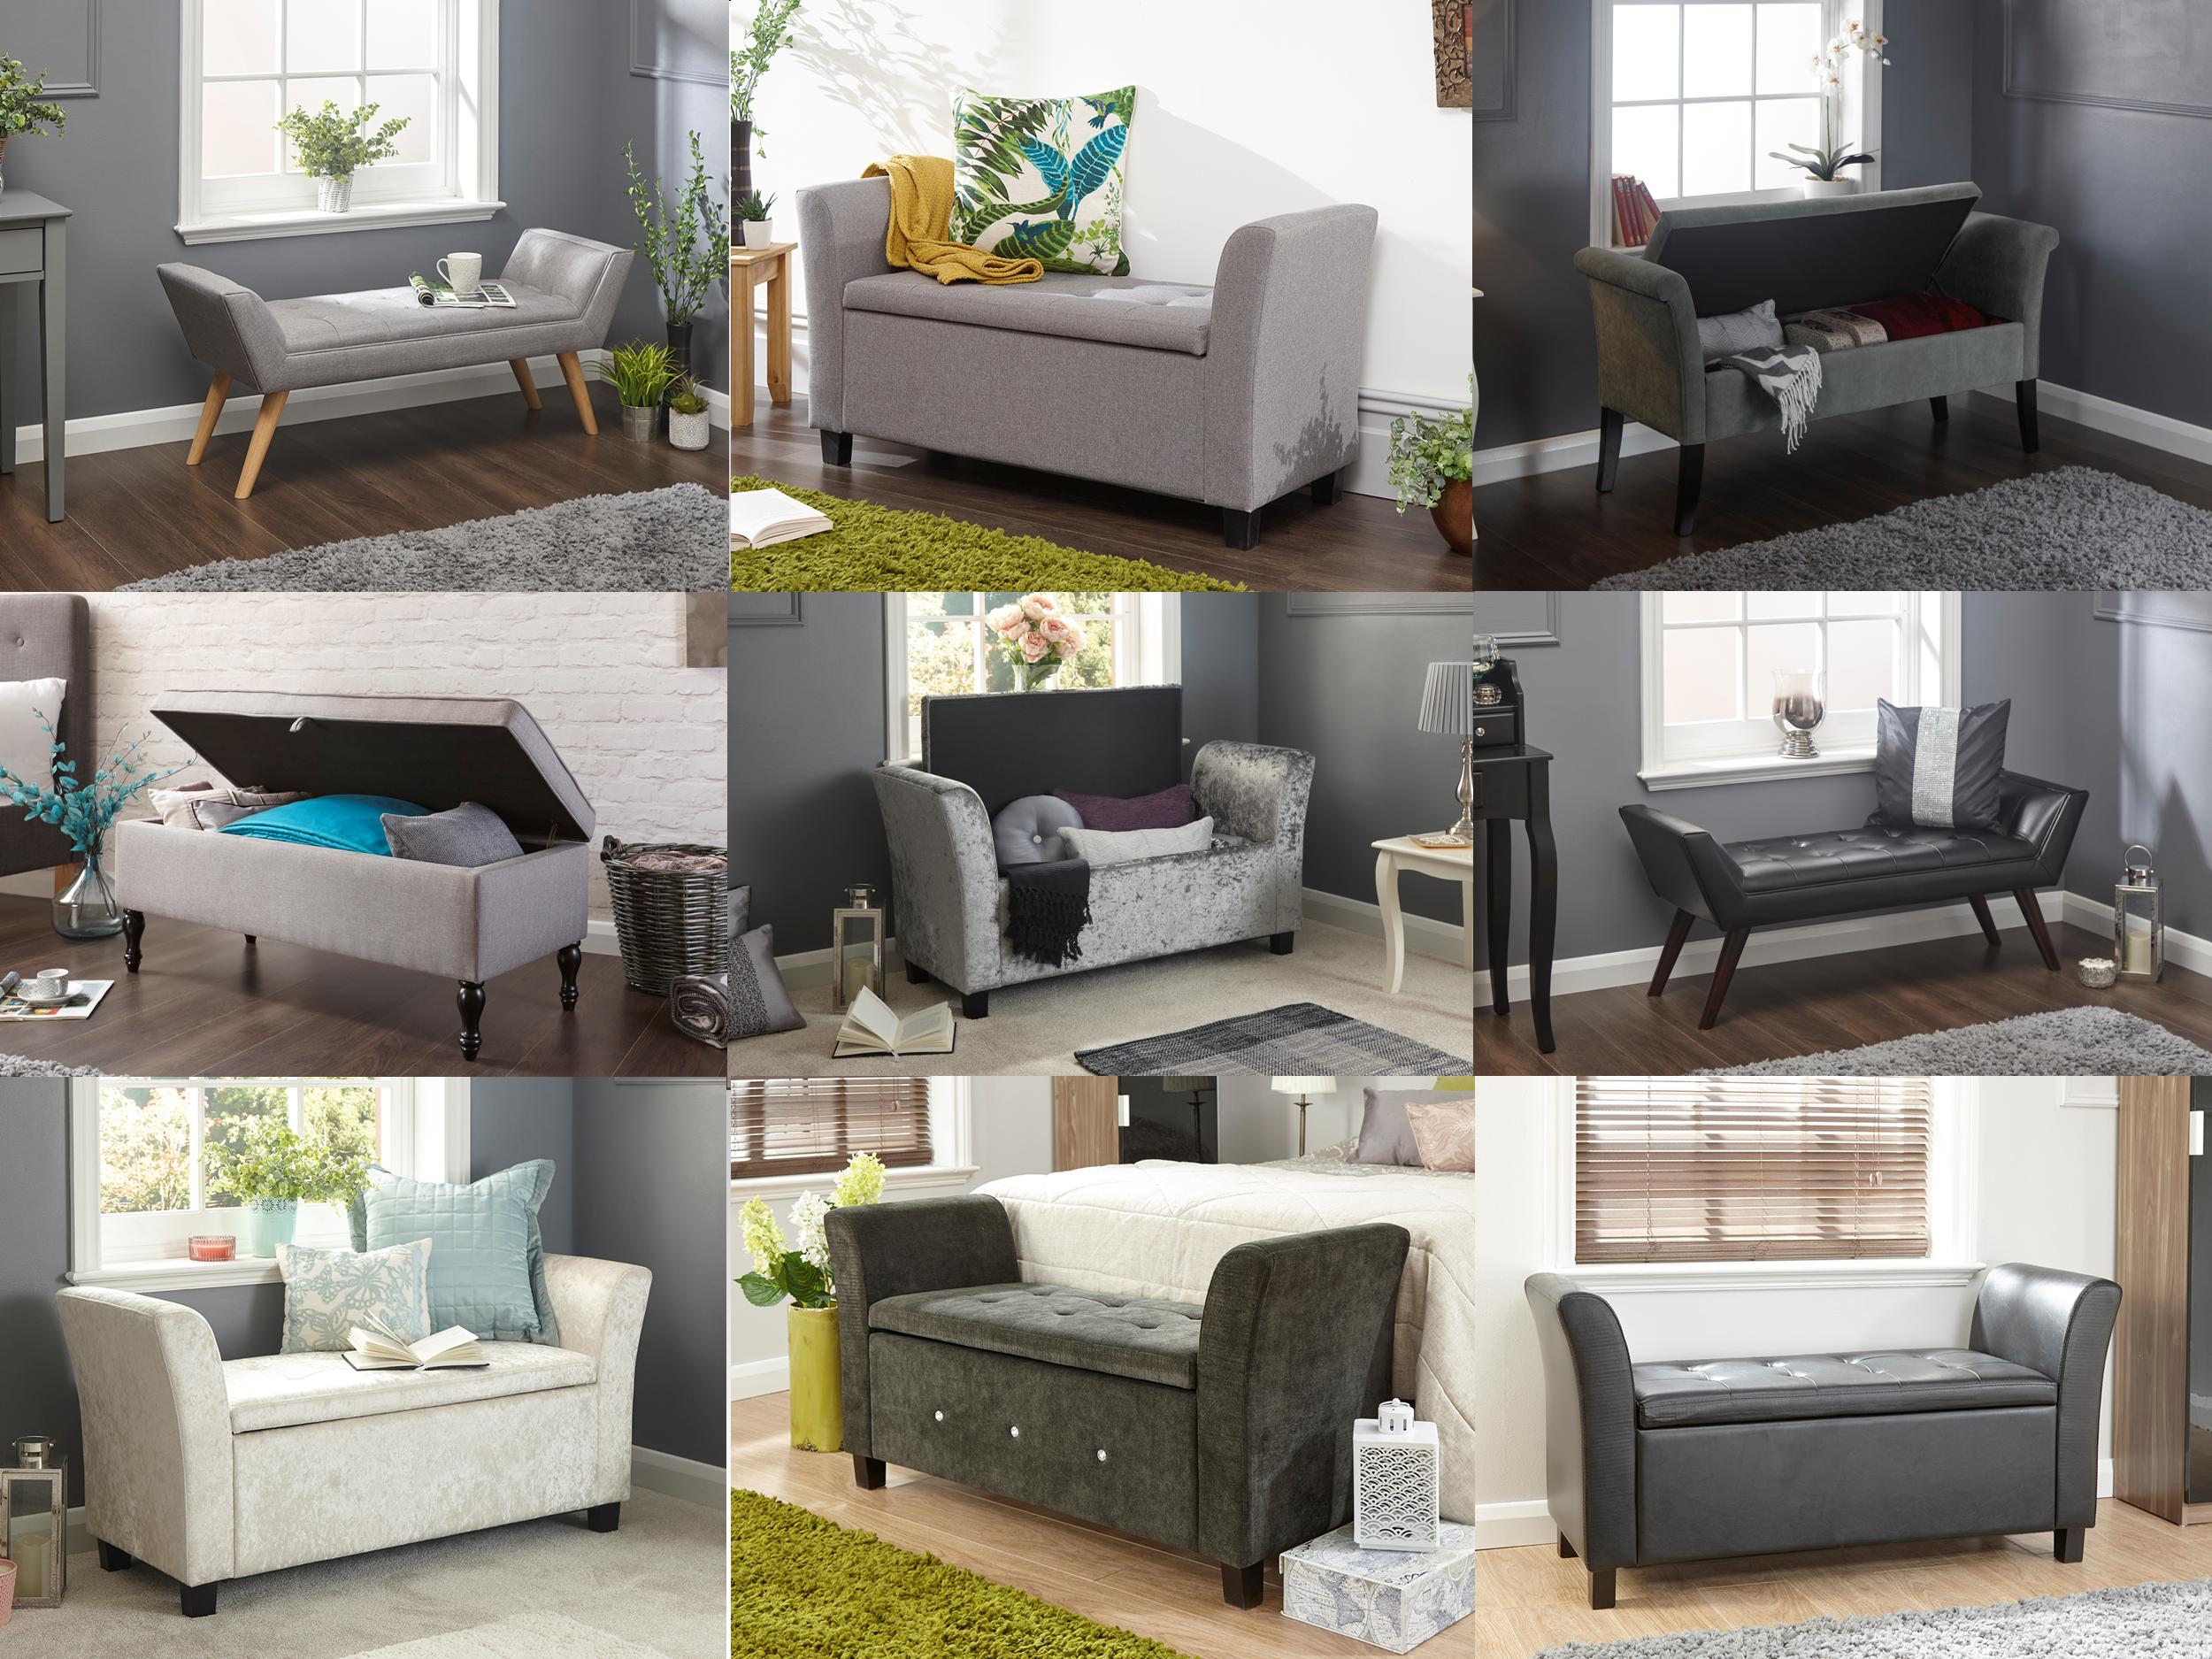 window seat benches with storage bedroom ottoman bench